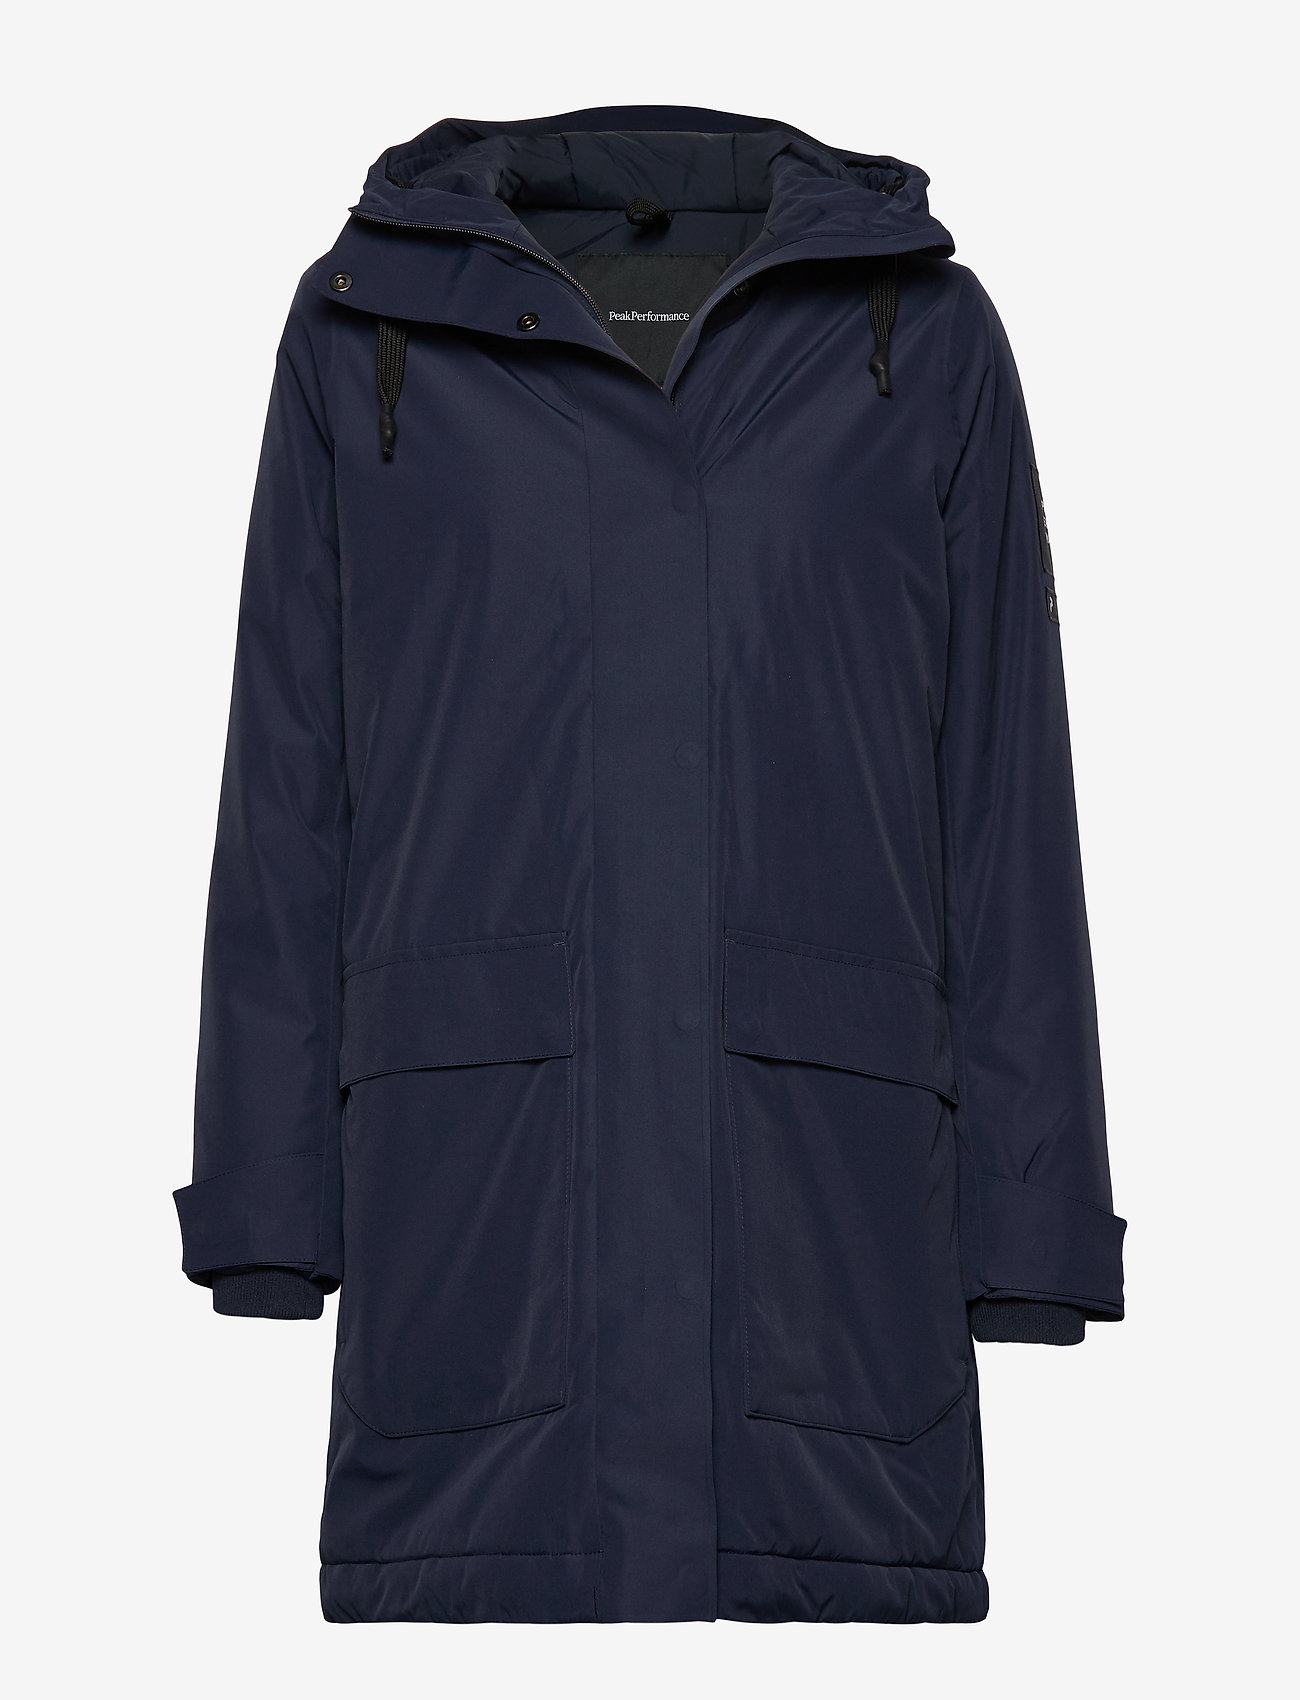 Peak Performance - W UNIT J - parka coats - blue shadow - 0